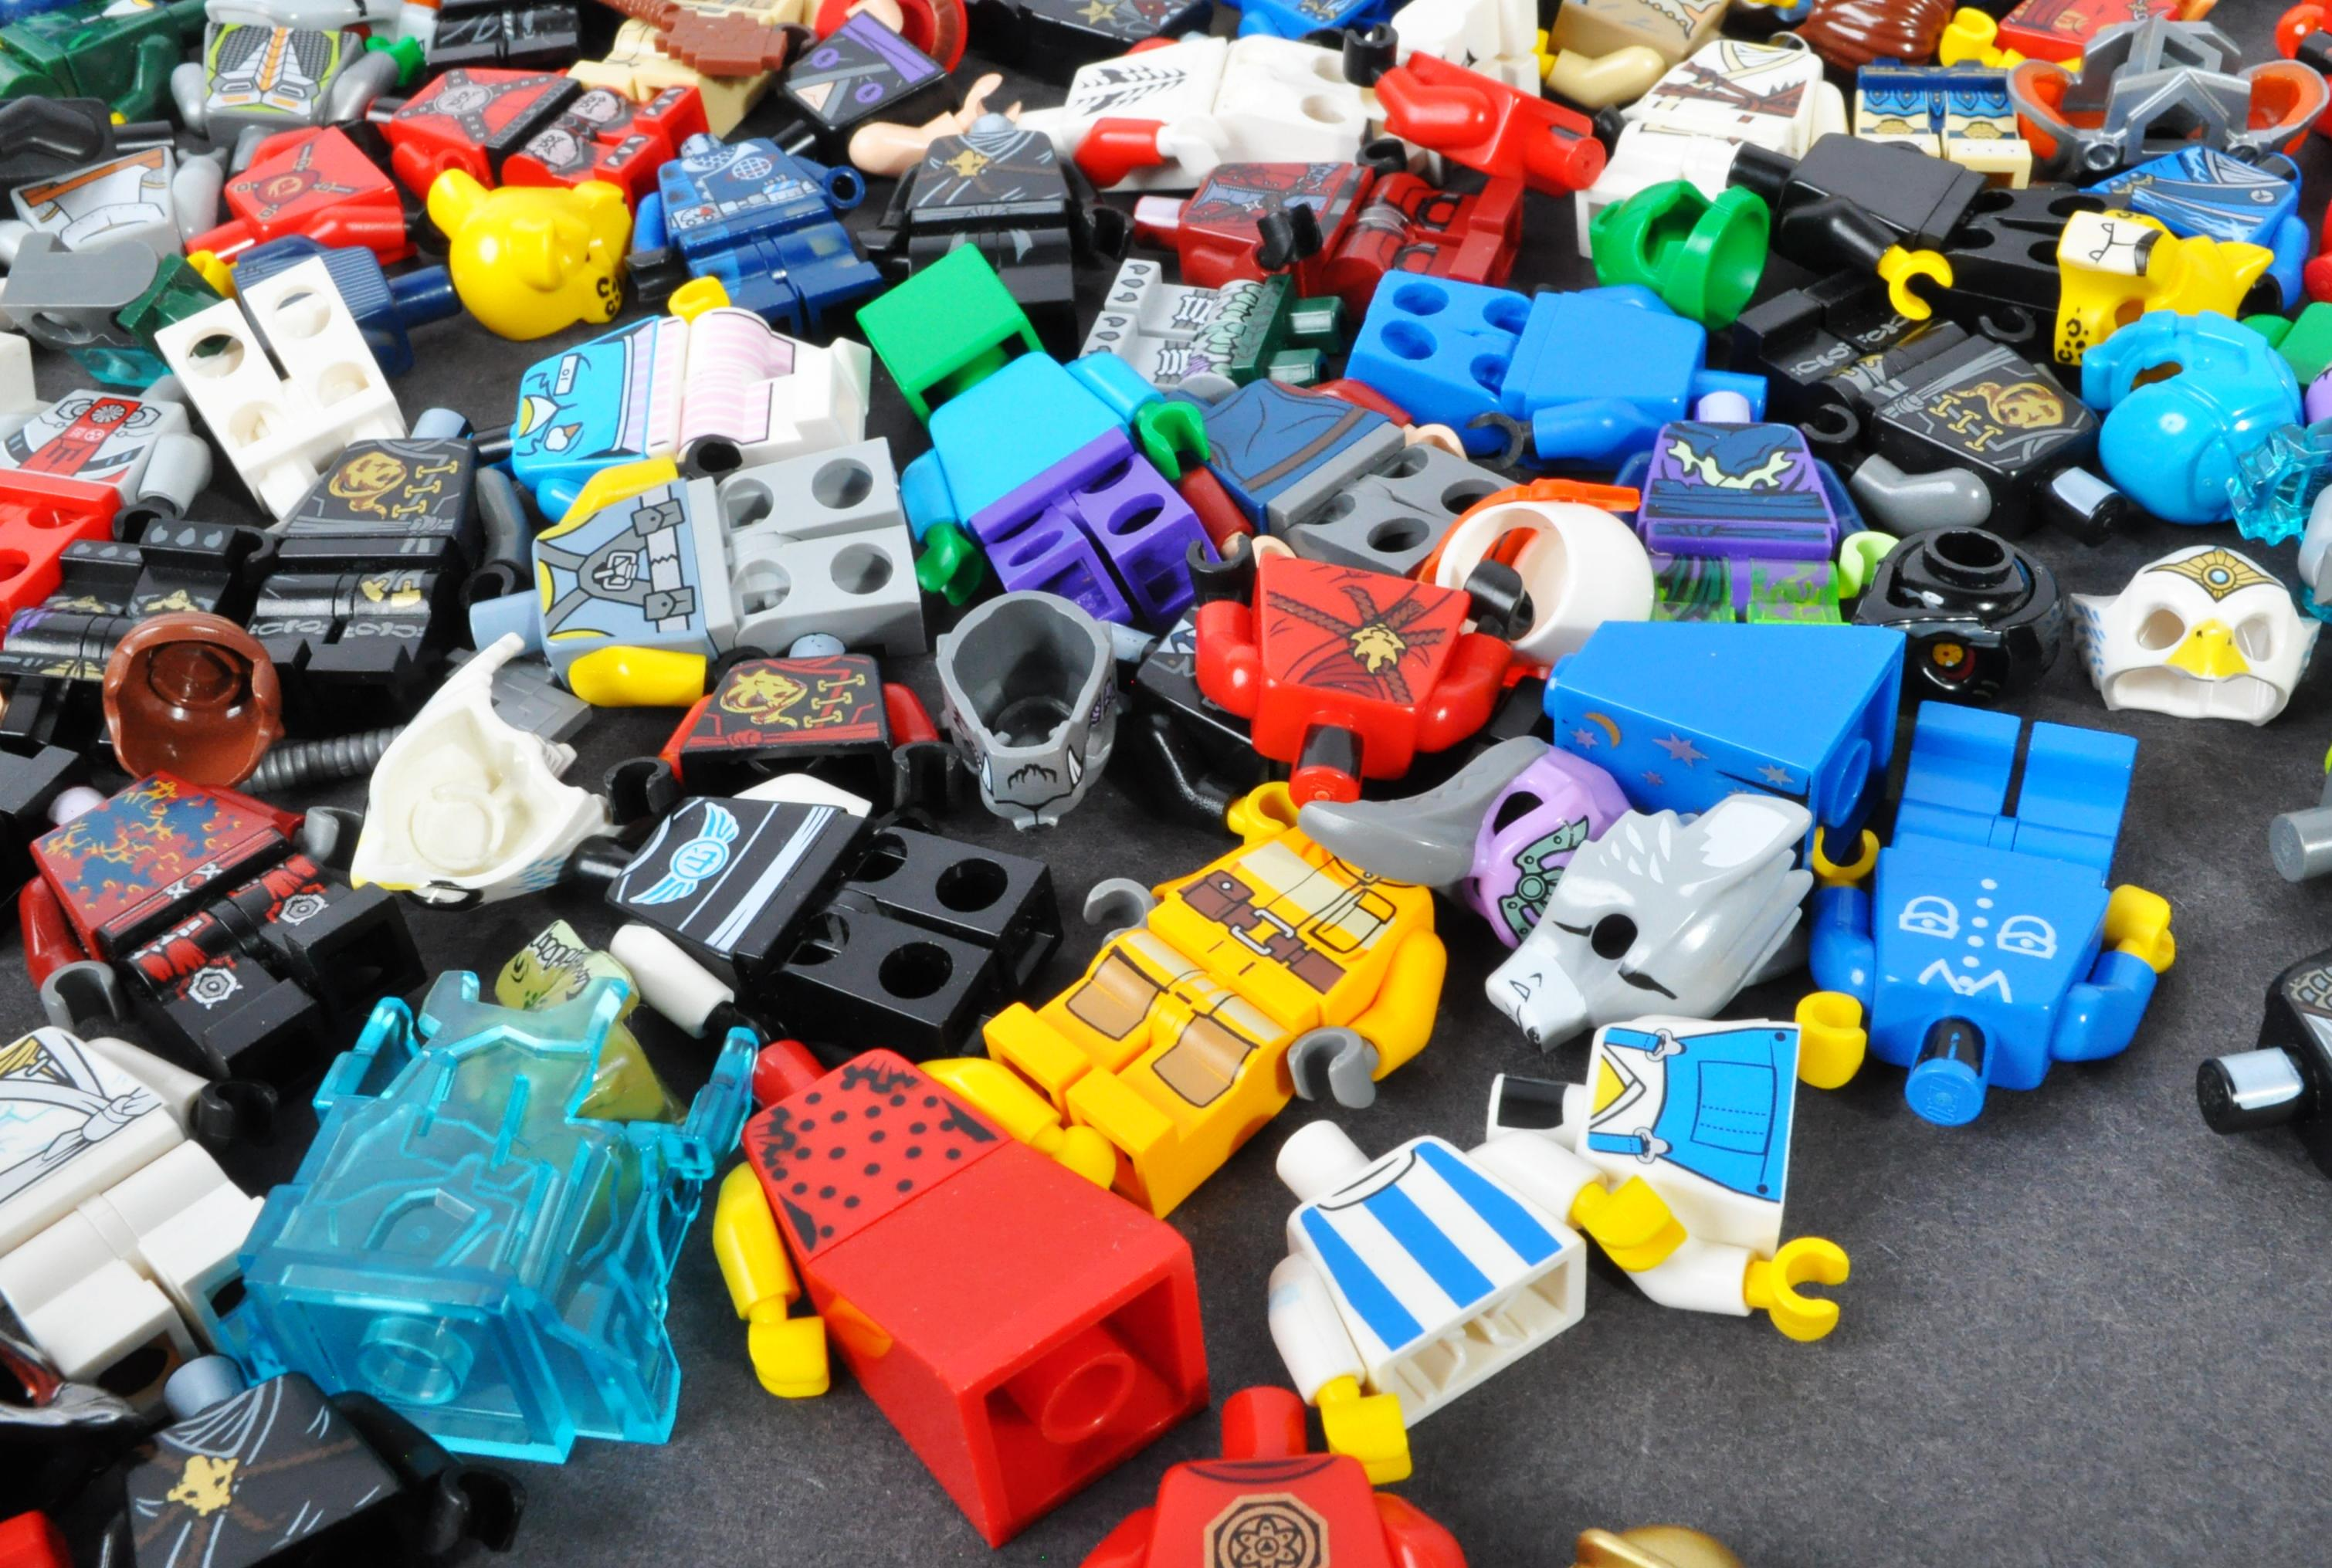 LEGO MINIFIGURES - COLLECTION OF ASSORTED LEGO MINIFIGURE PARTS - Image 4 of 5